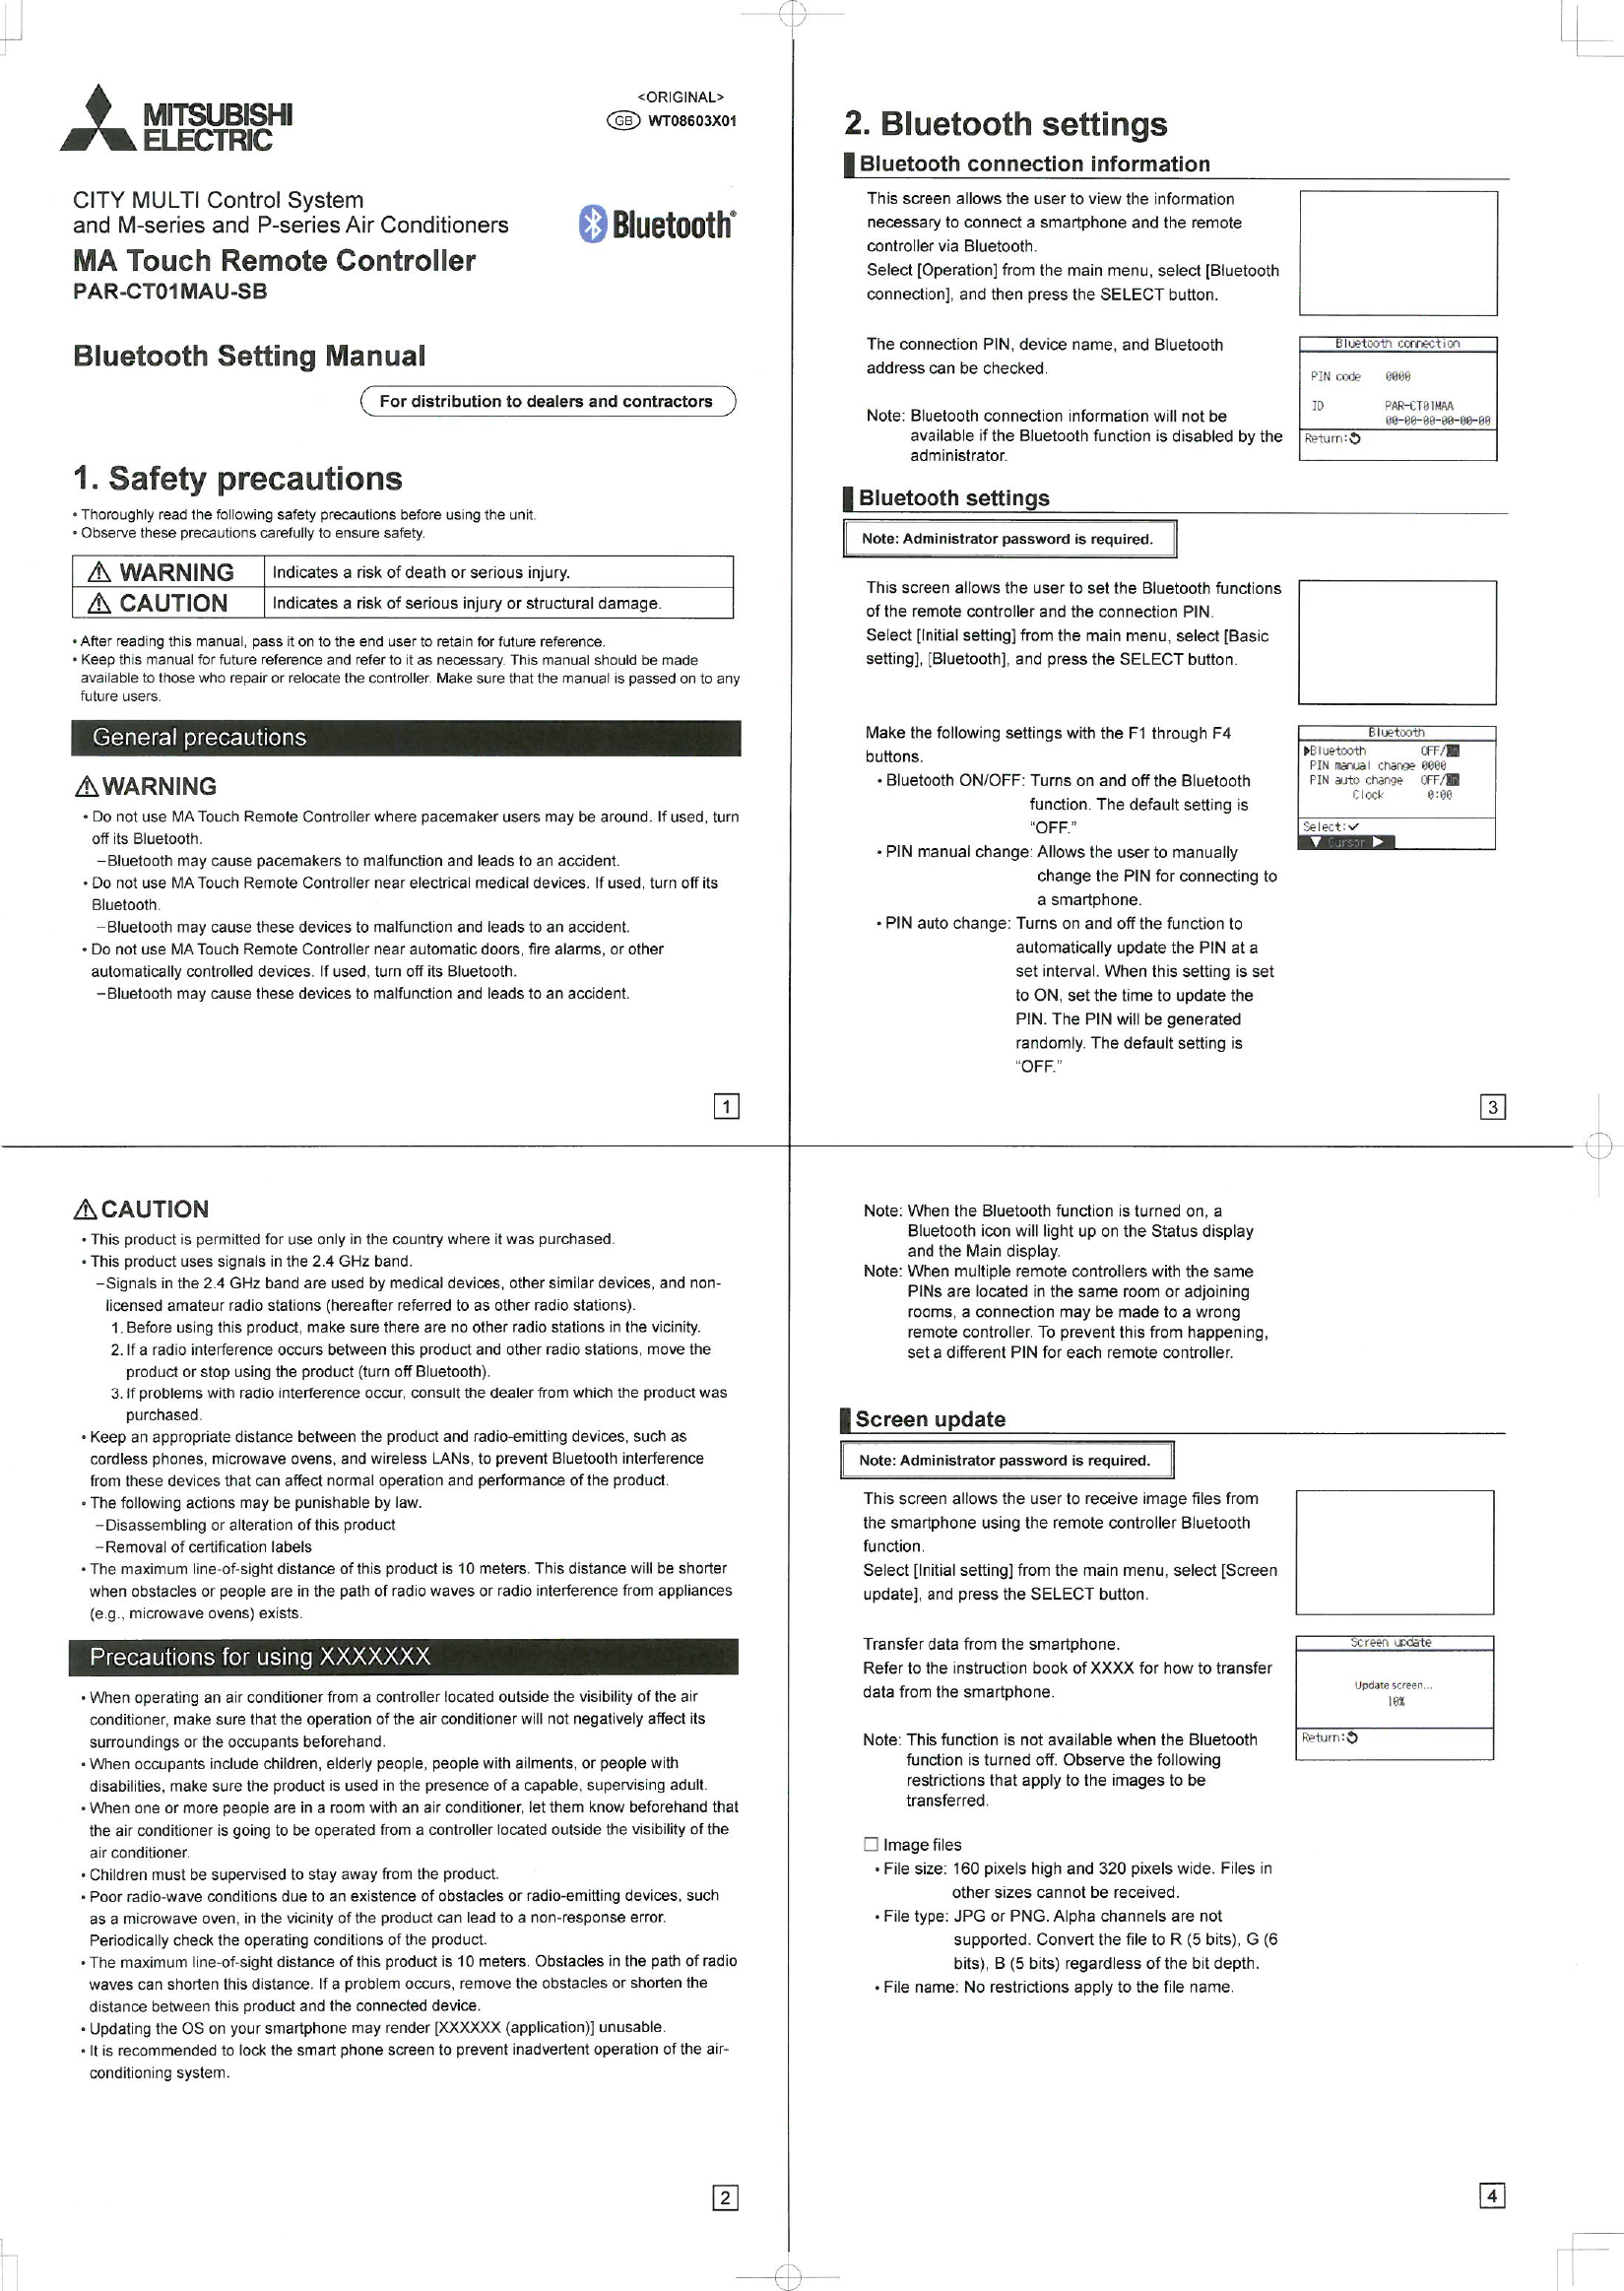 Mitsubishi Electric Air Conditioning And Refrigeration Manual Guide